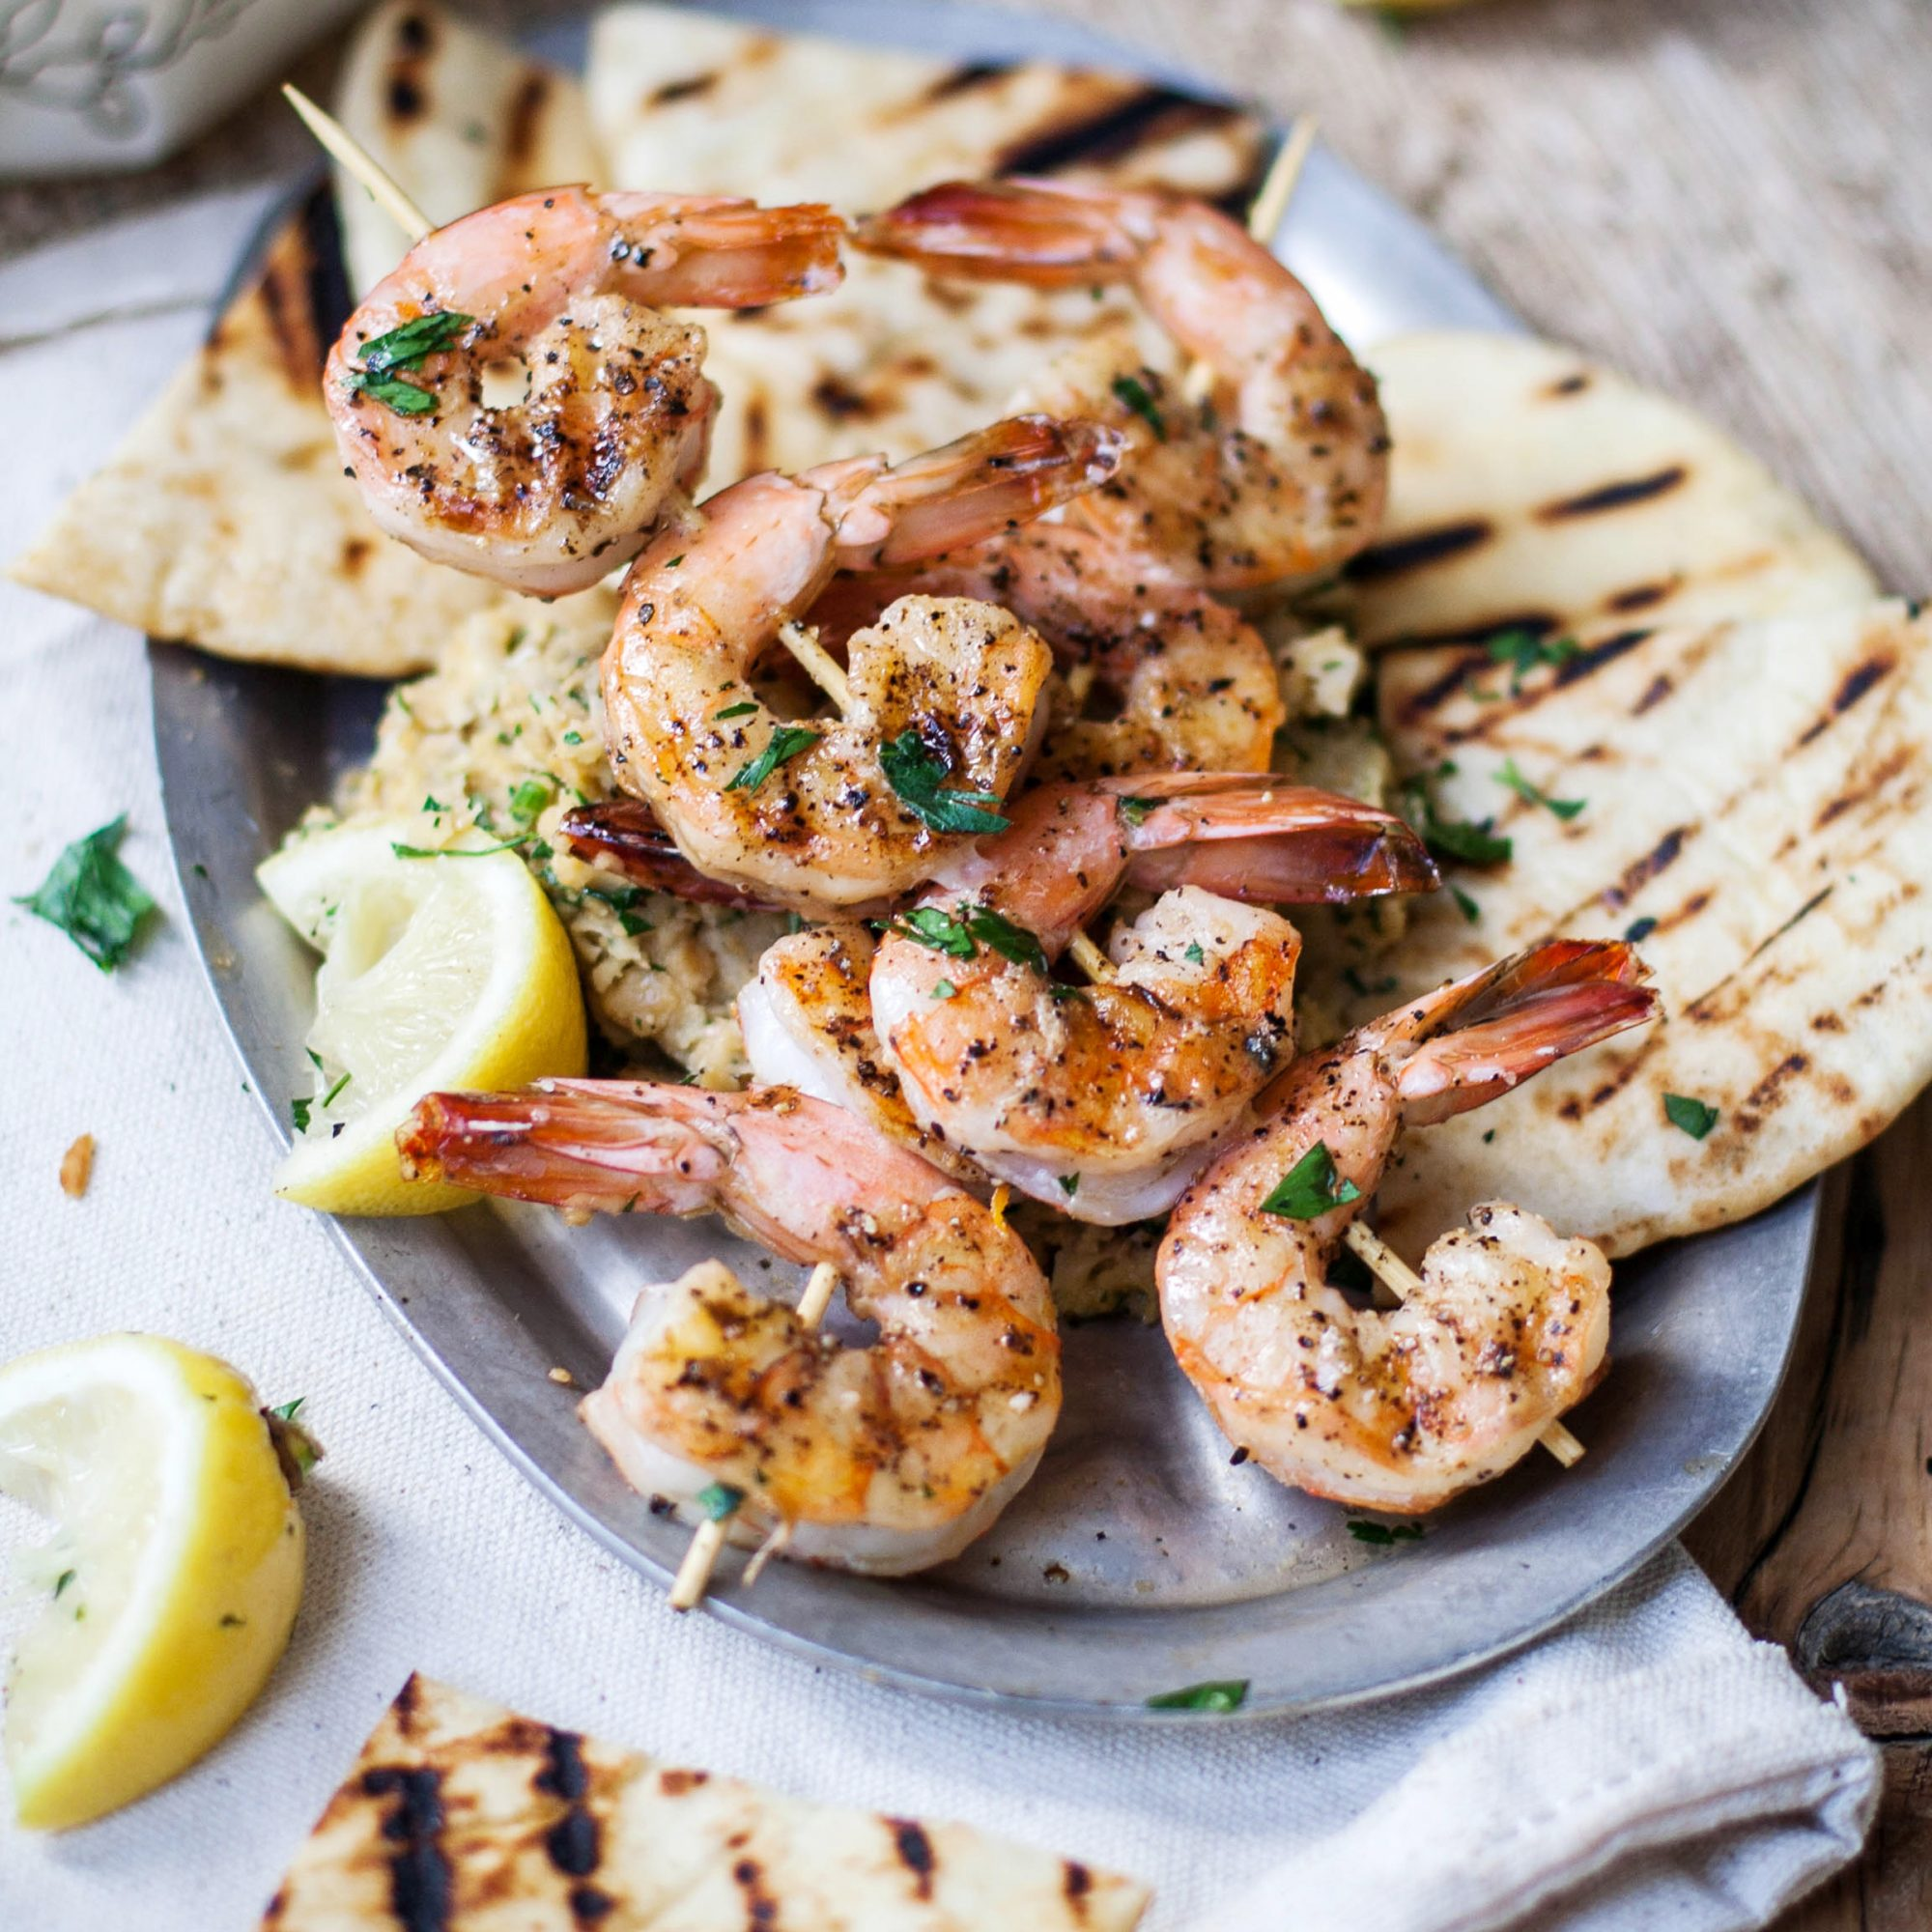 Grilled Shrimp and Pitas with Chickpea Puree